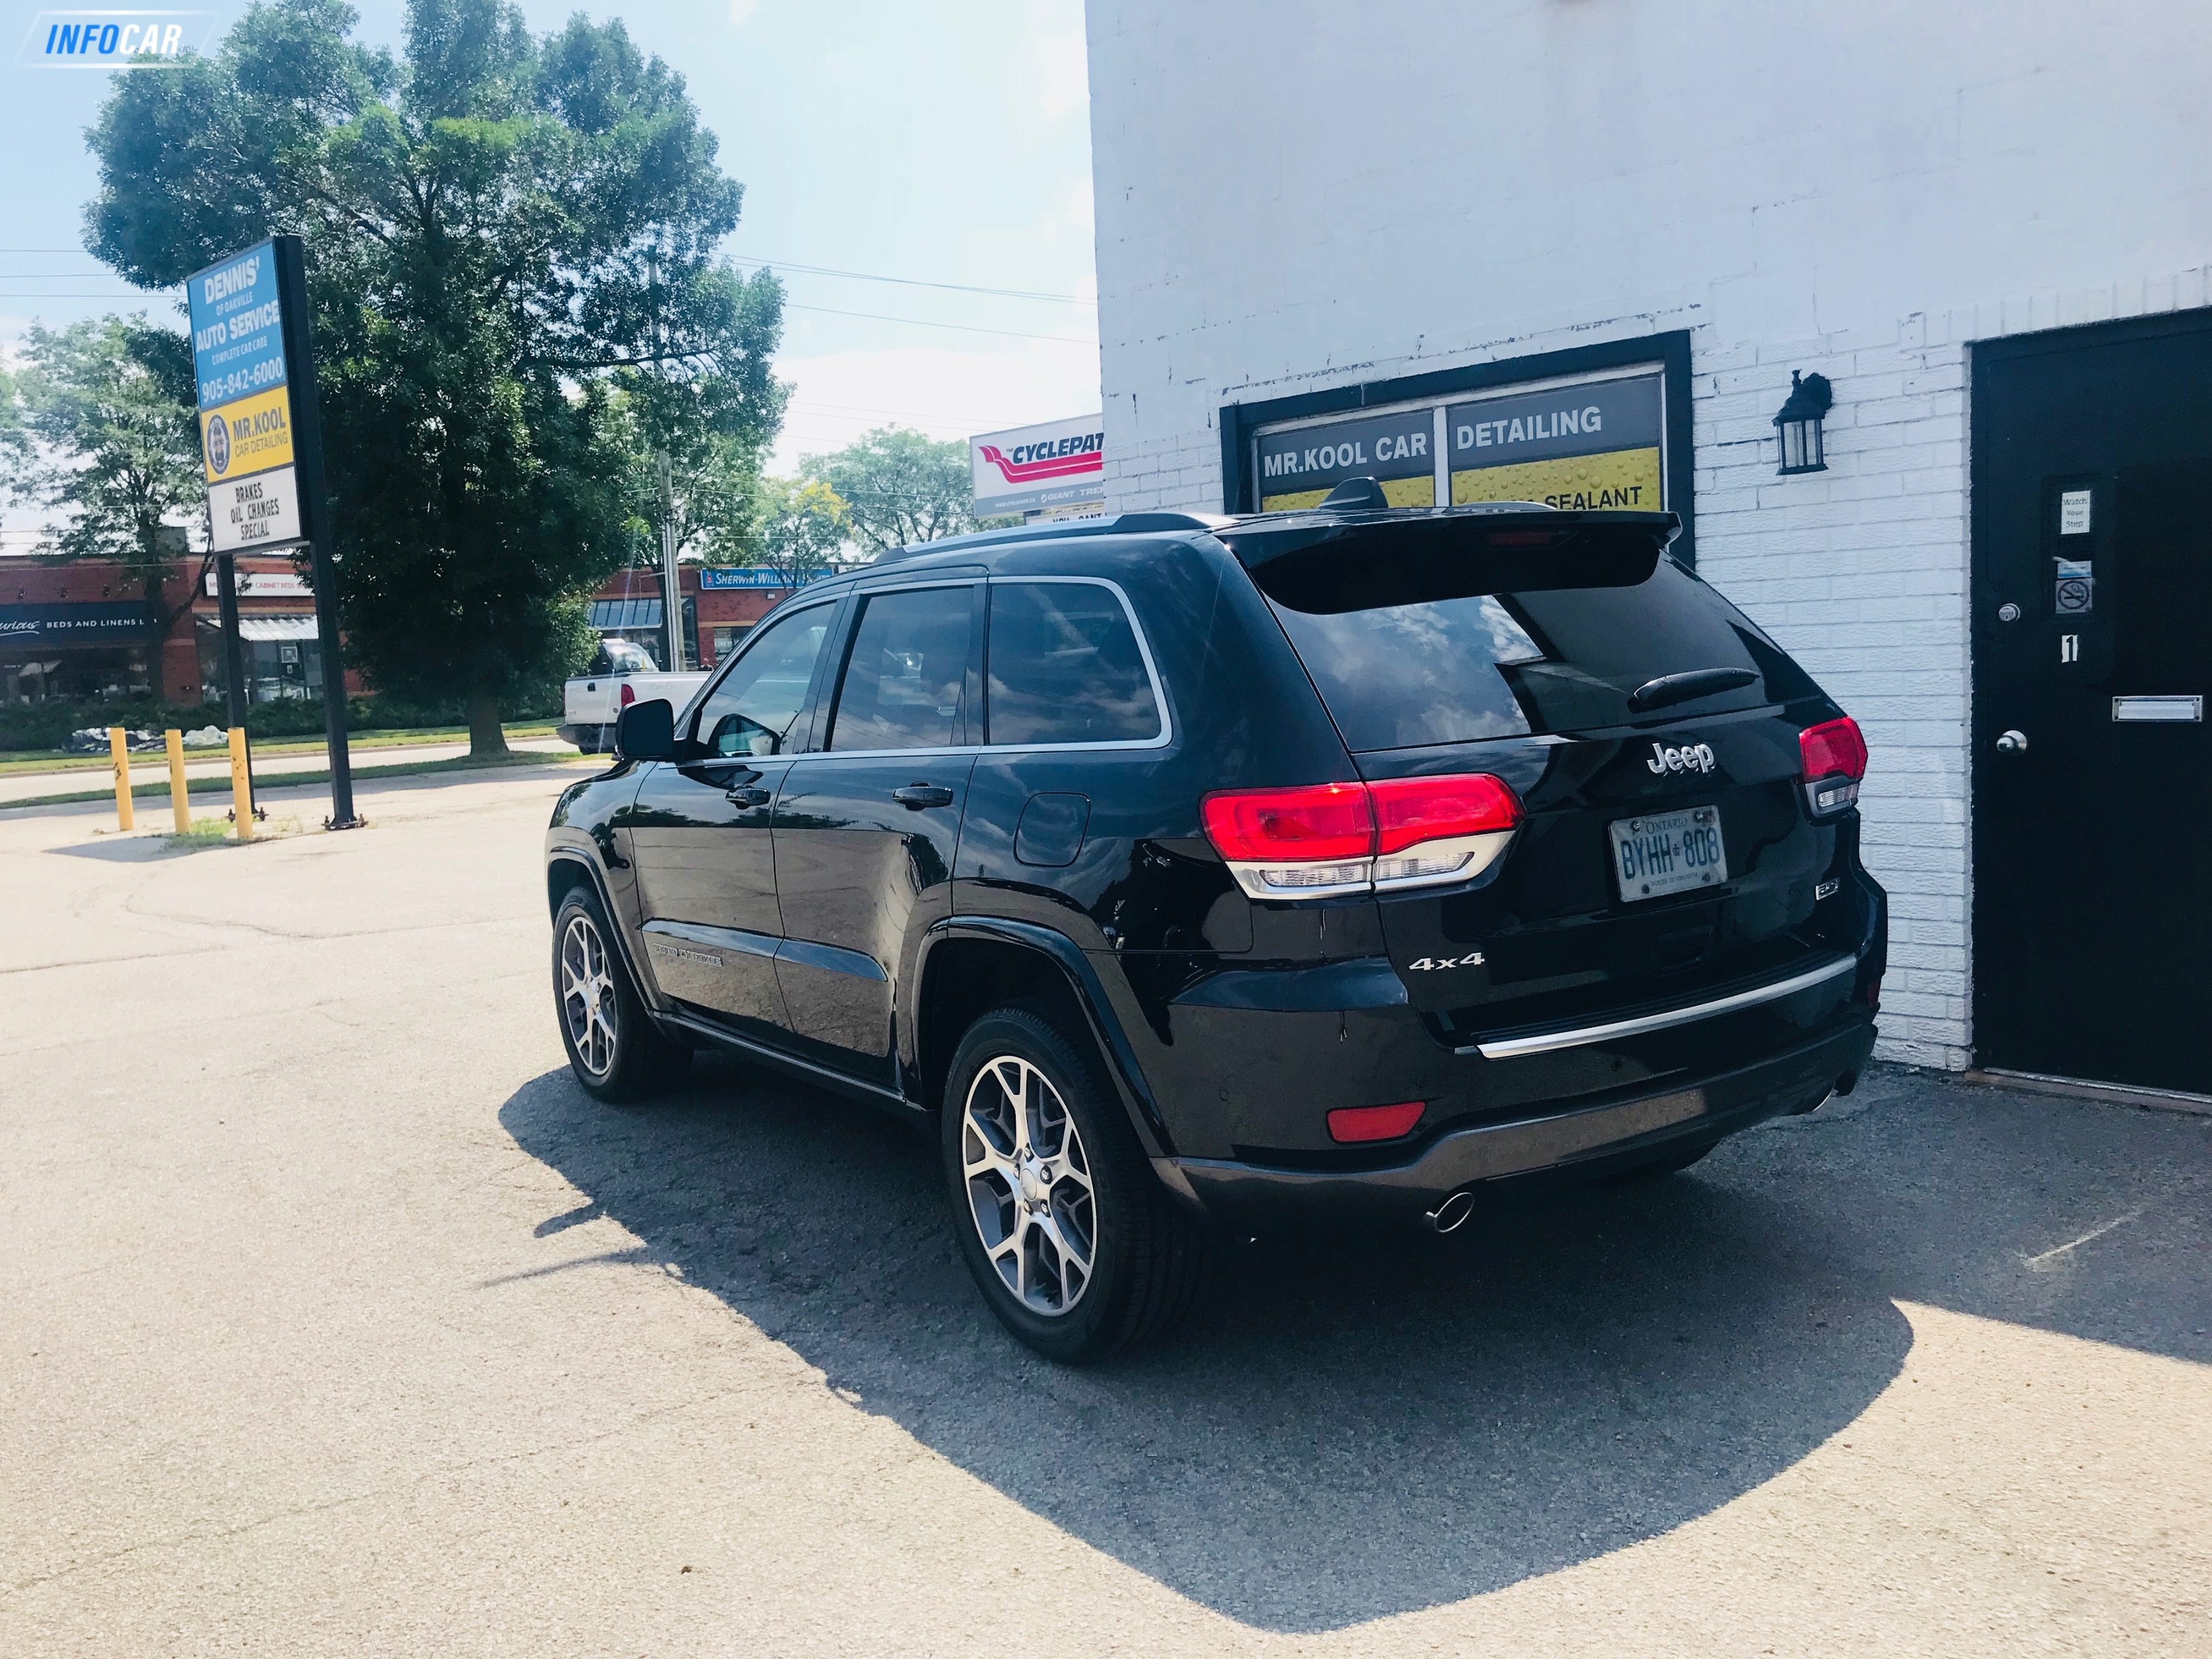 2018 Jeep Grand Cherokee Limited 4x4 - INFOCAR - Toronto's Most Comprehensive New and Used Auto Trading Platform